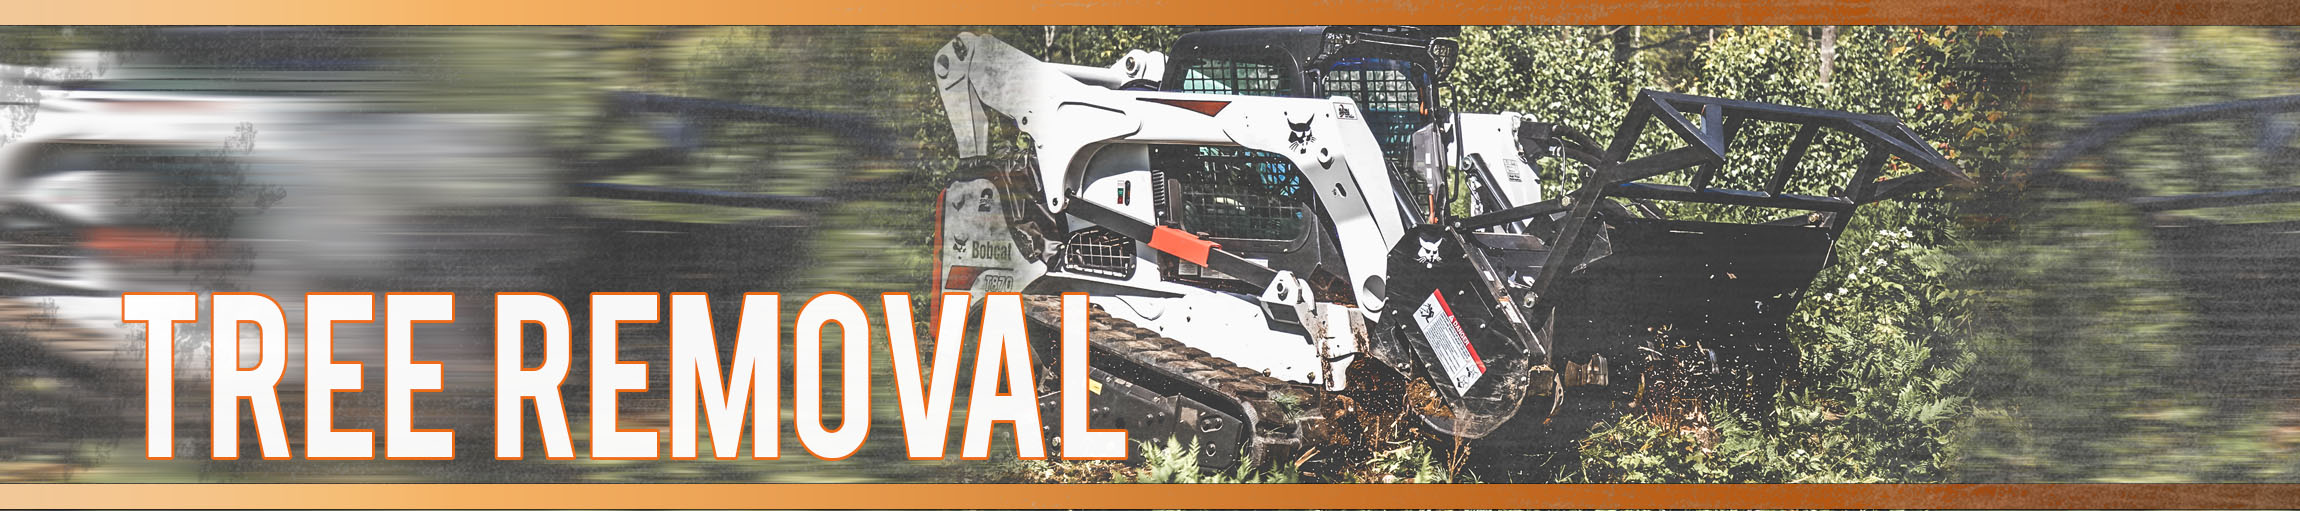 Tree removal Attachments Mulchers, Brushcutters, and  Forestry Package